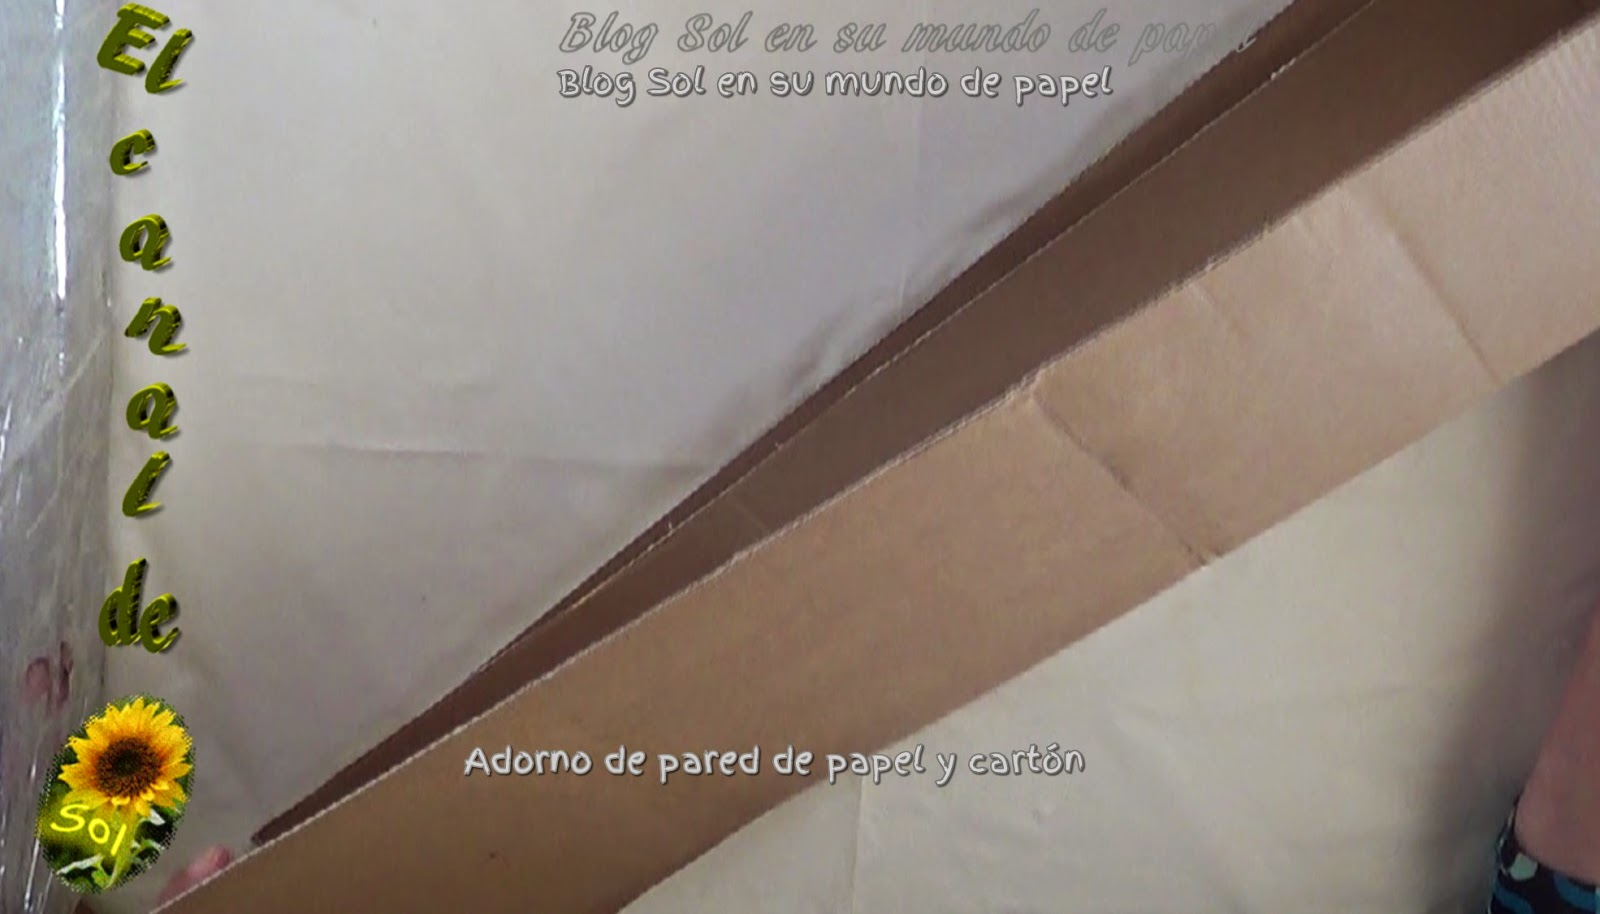 Adorno de pared de papel peri dico y cart n for Paredes con papel periodico